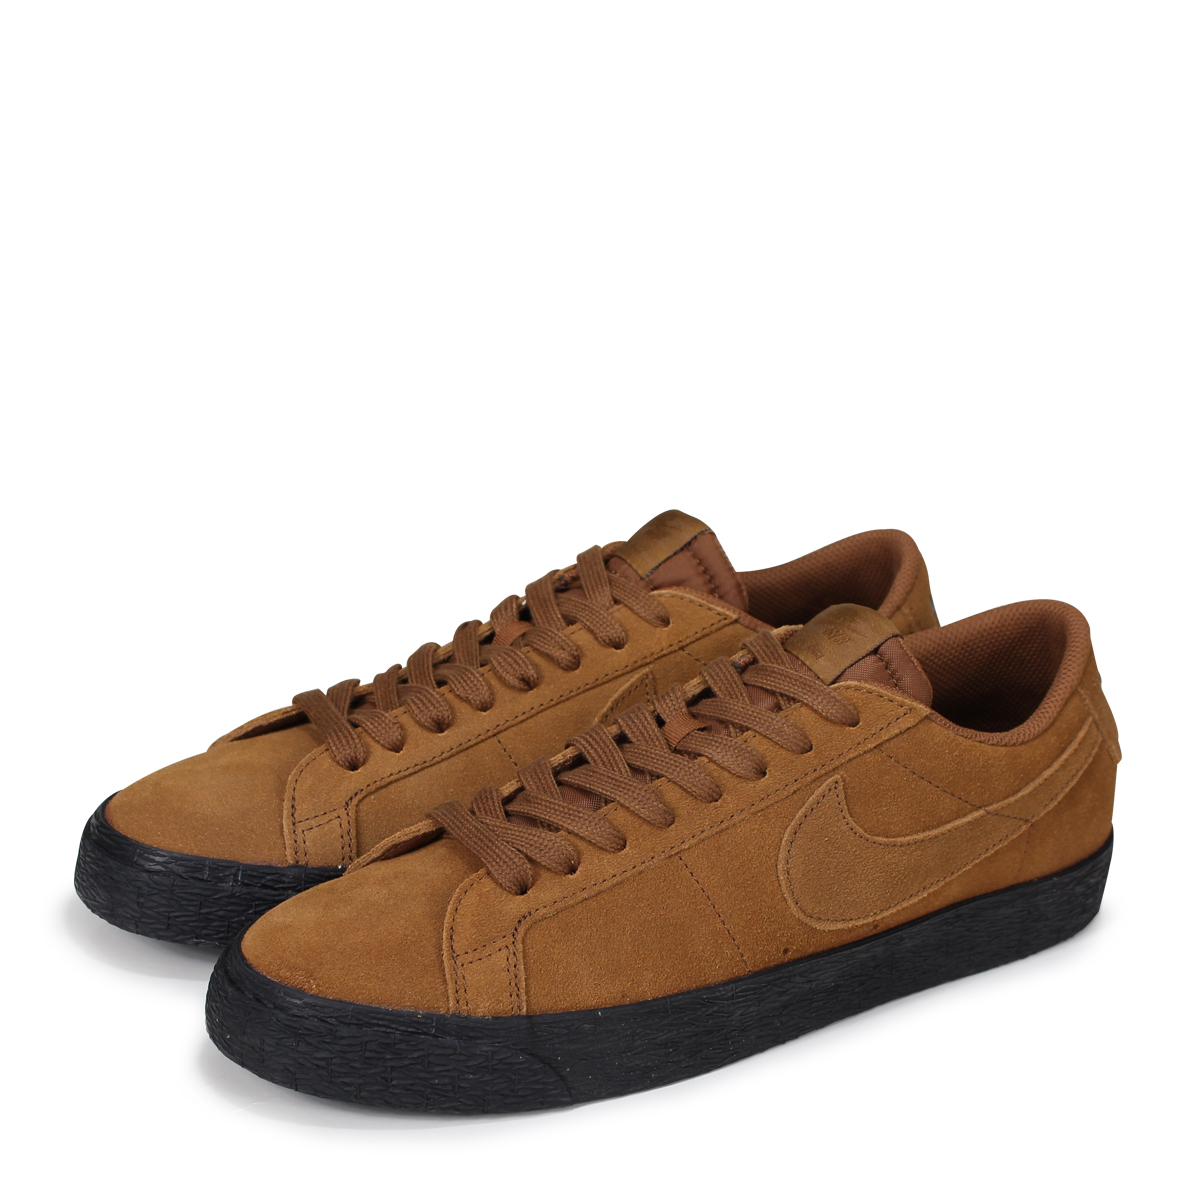 finest selection 59d29 d97d9 NIKE SB ZOOM BLAZER LOW Nike blazer low sneakers men 864,347-200 brown  [7/13 Shinnyu load] [187]